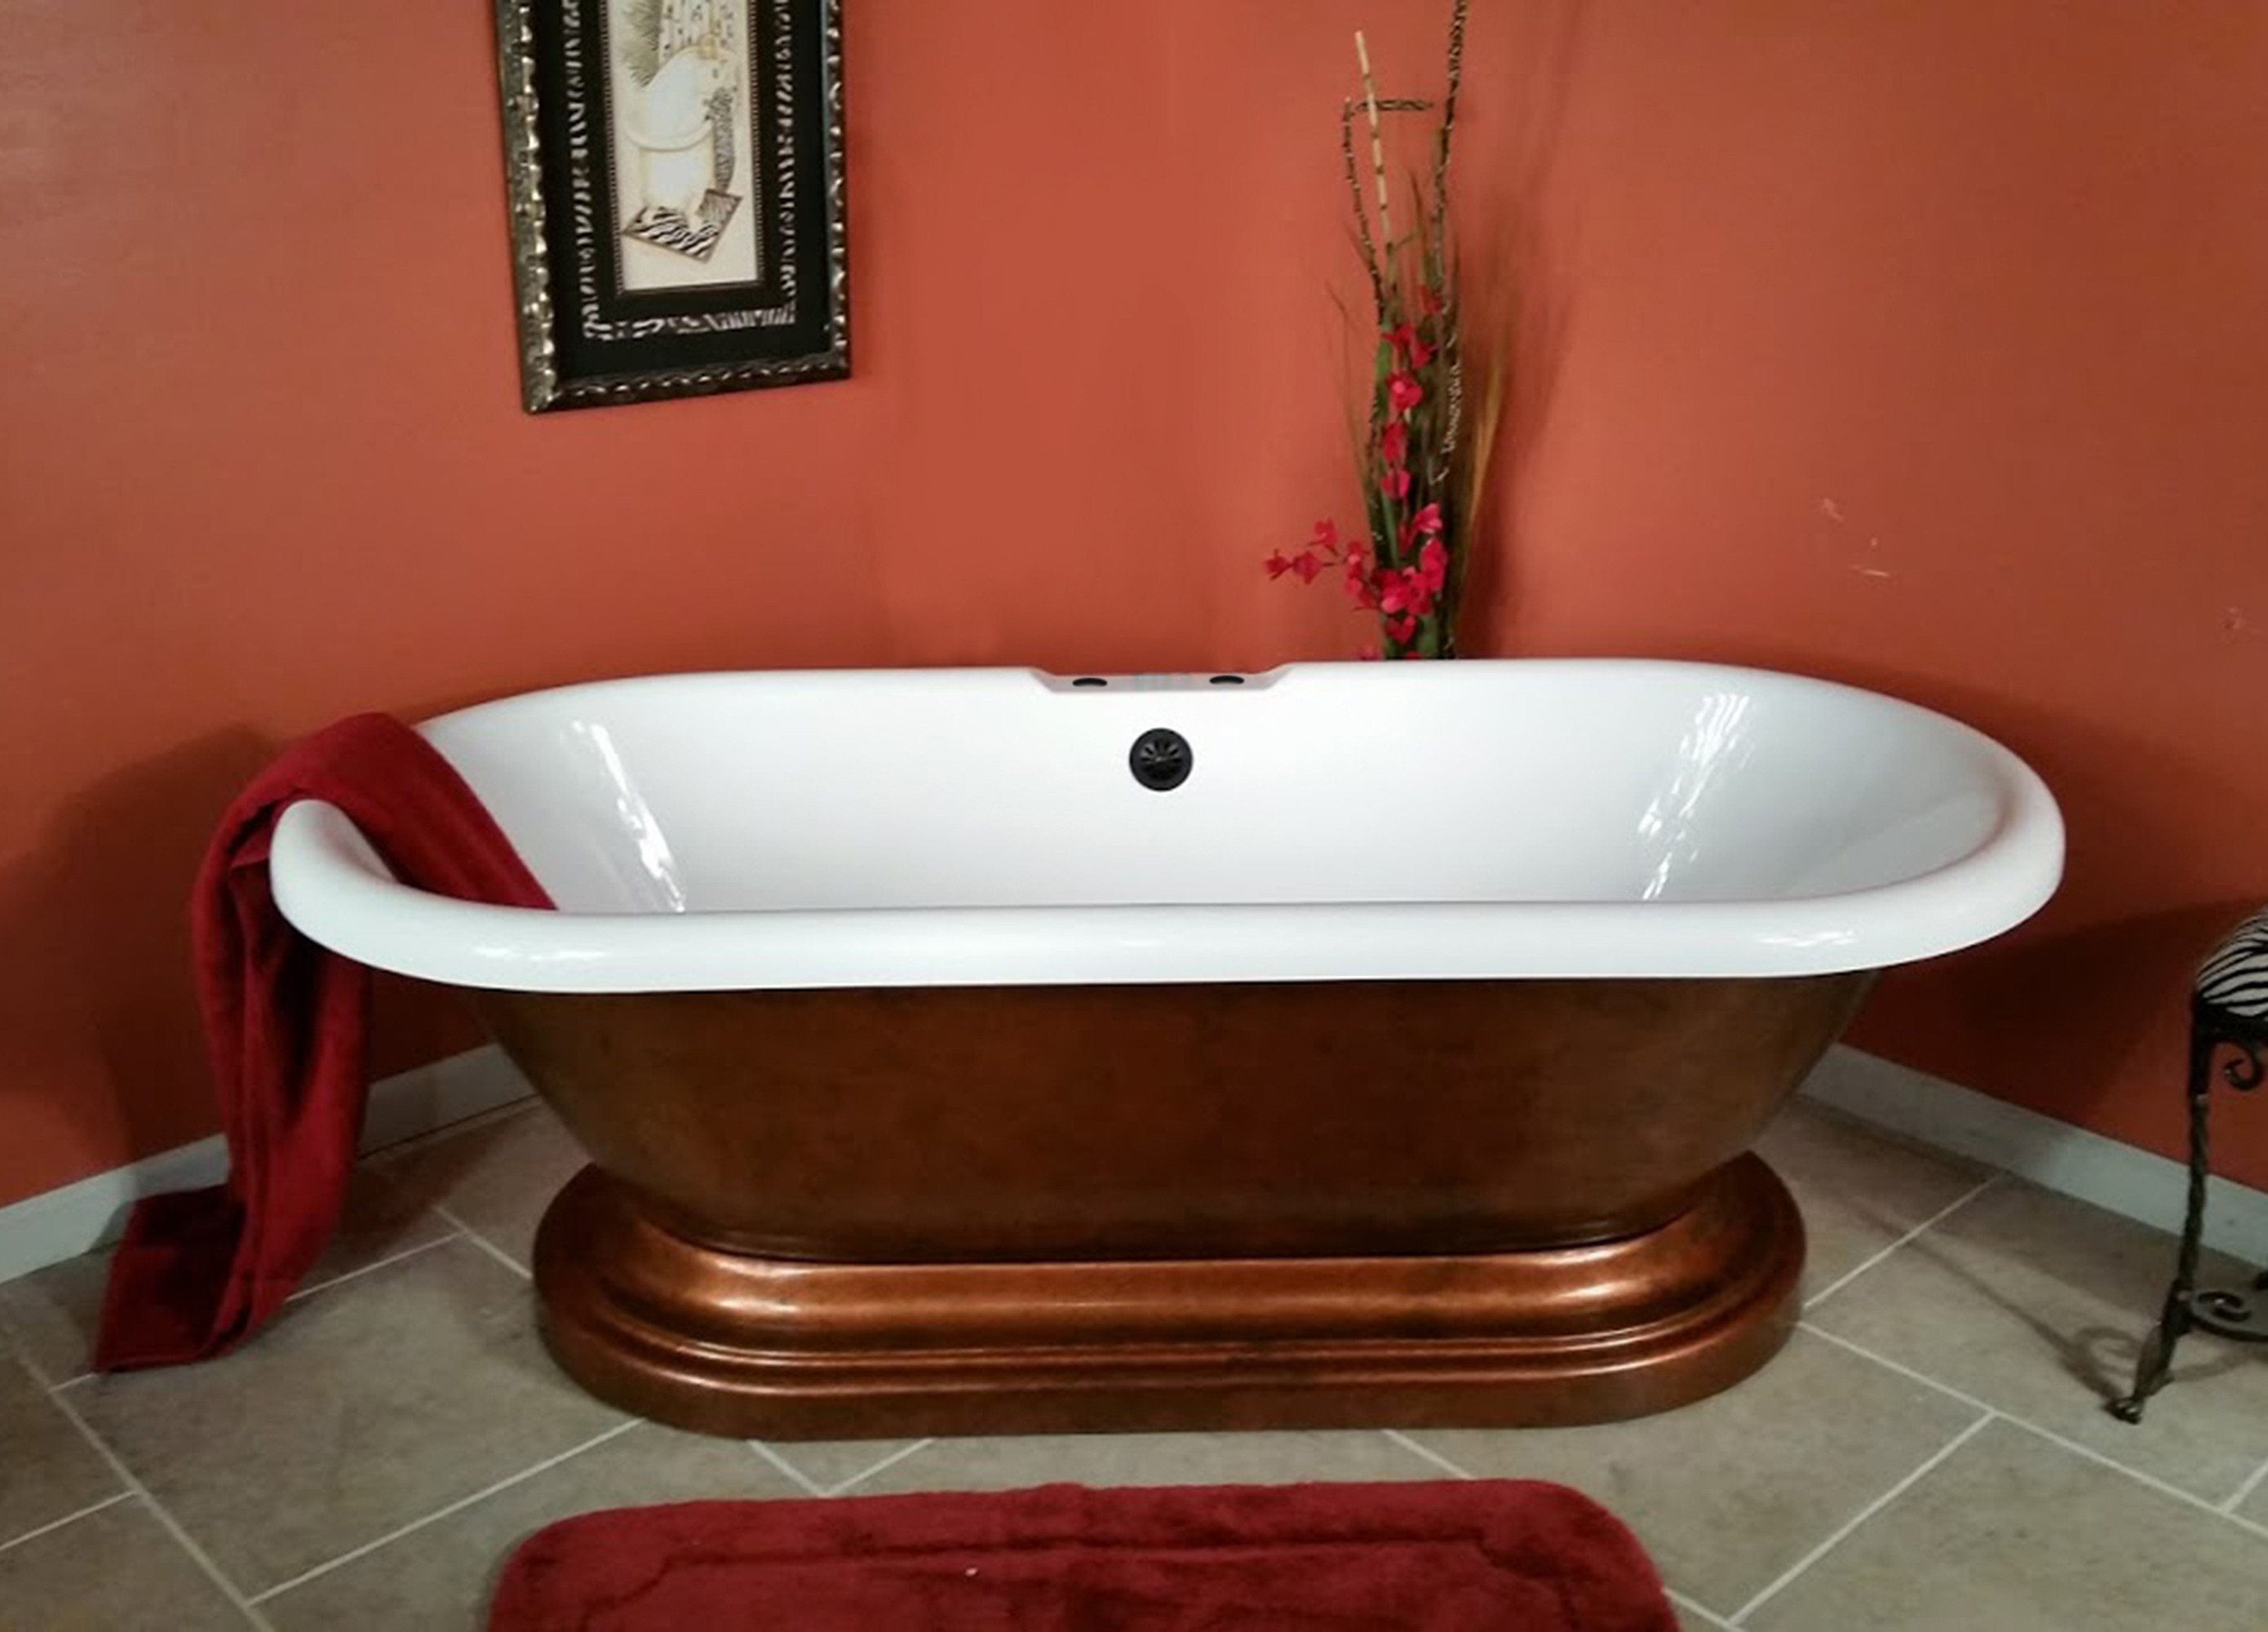 CambridgeADE-PED-DH-CB Acrylic Double Ended Tub On a Pedestal - Copper Bronze